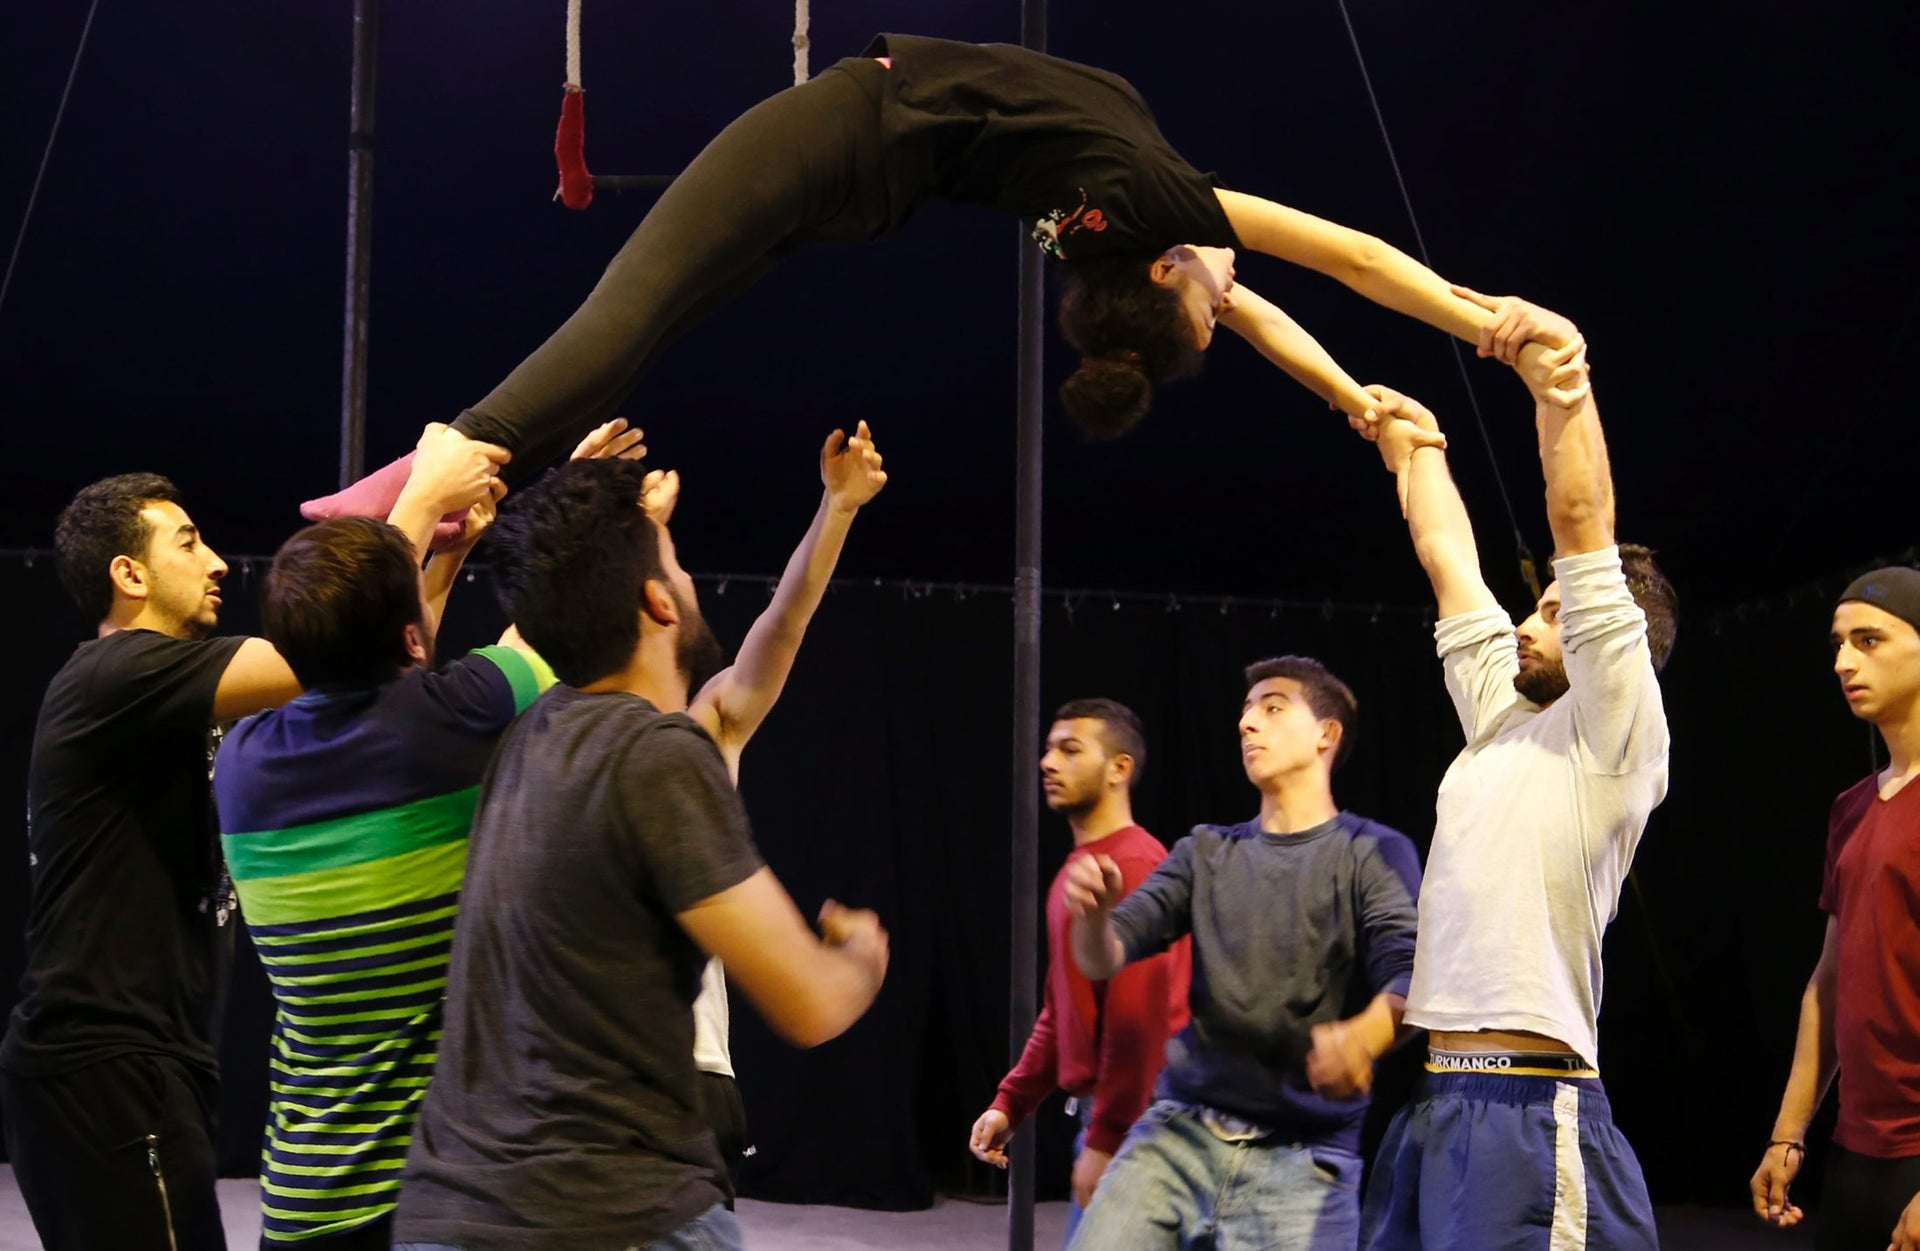 Young Palestinians train at the Palestinian Circus School in the village of Bir Zeit, near Ramallah on March 22, 2016.